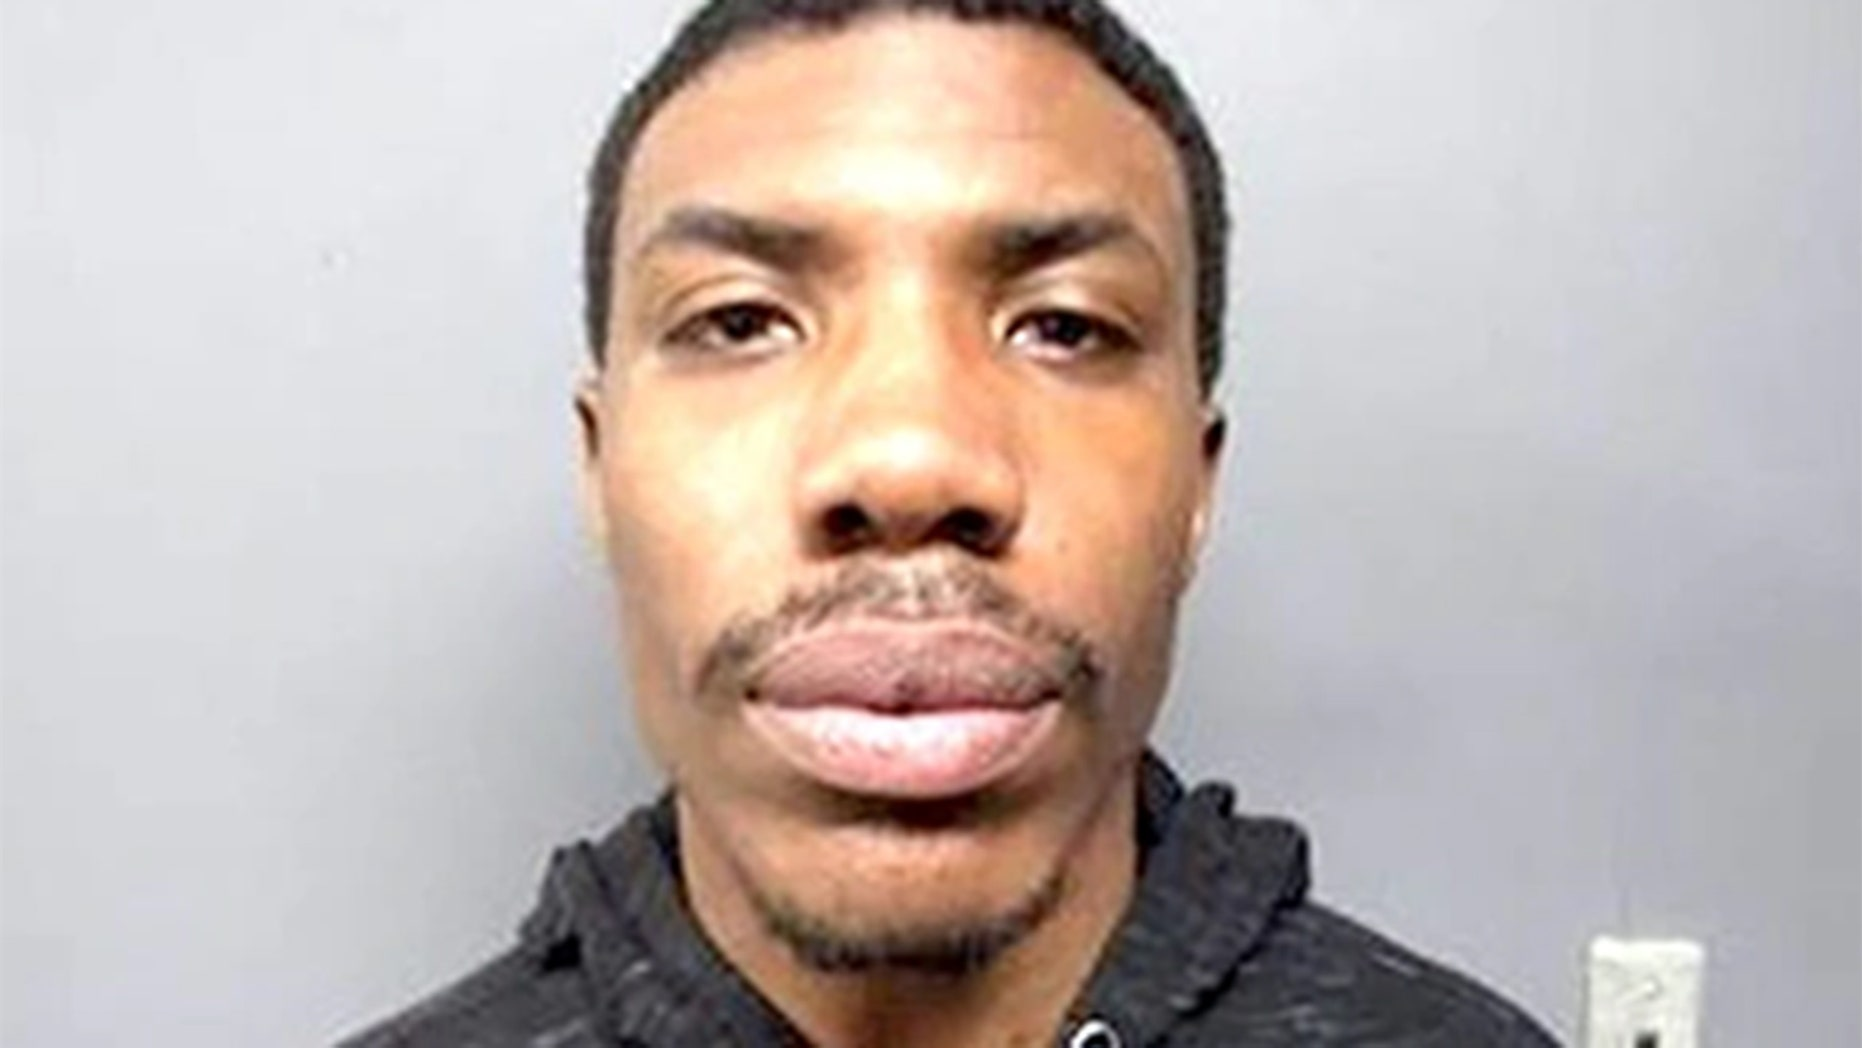 Malik Evans, 23, is accused of stealing an unattended running vehicle in Hackensack, N.J. He was tracked down with the help of footprints in the snow.